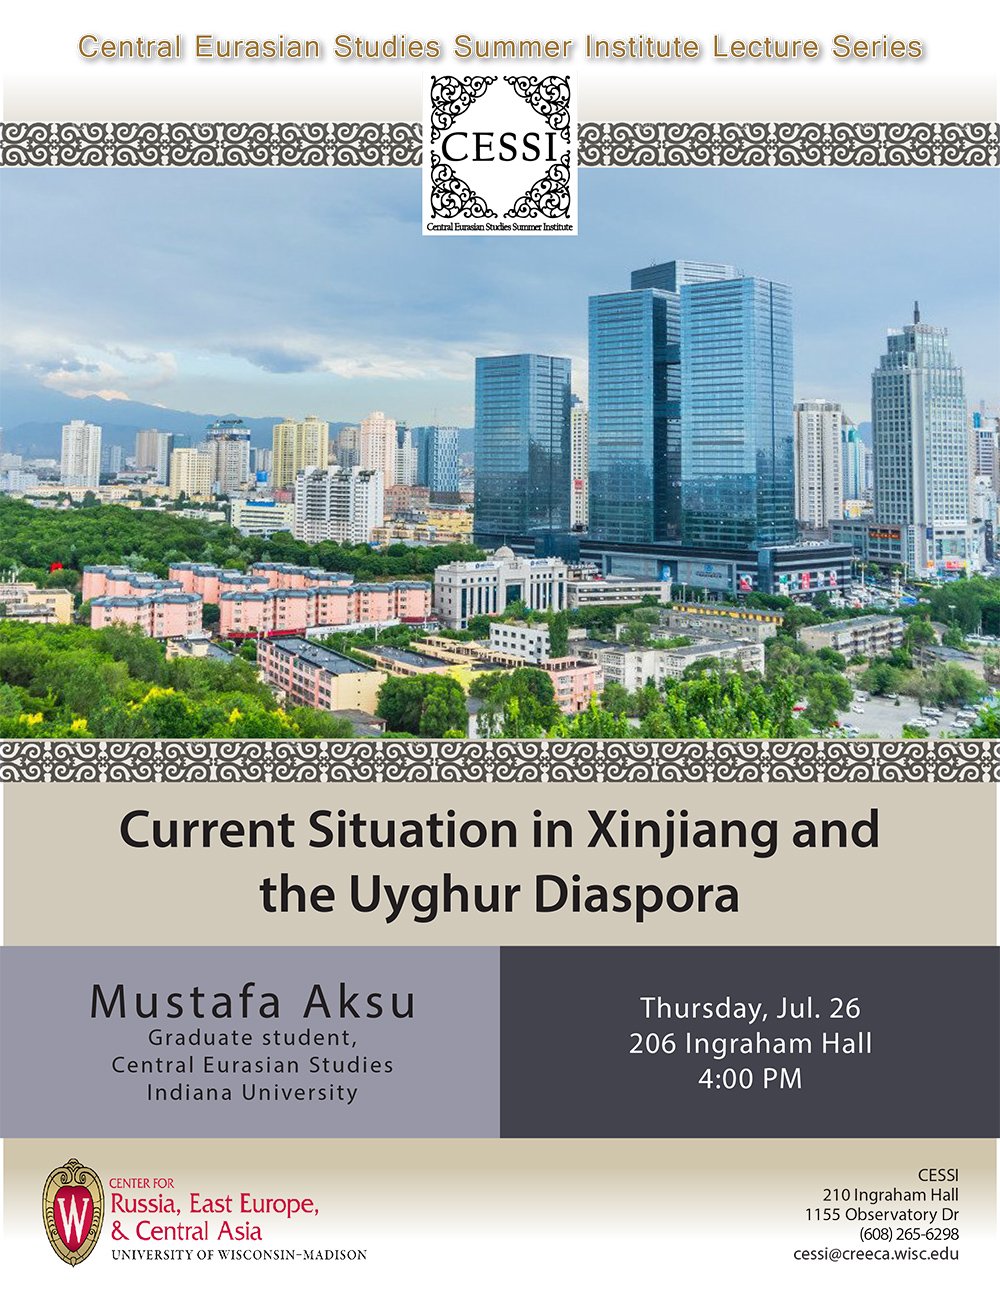 Poster for Aksu lecture featuring generic cityscape